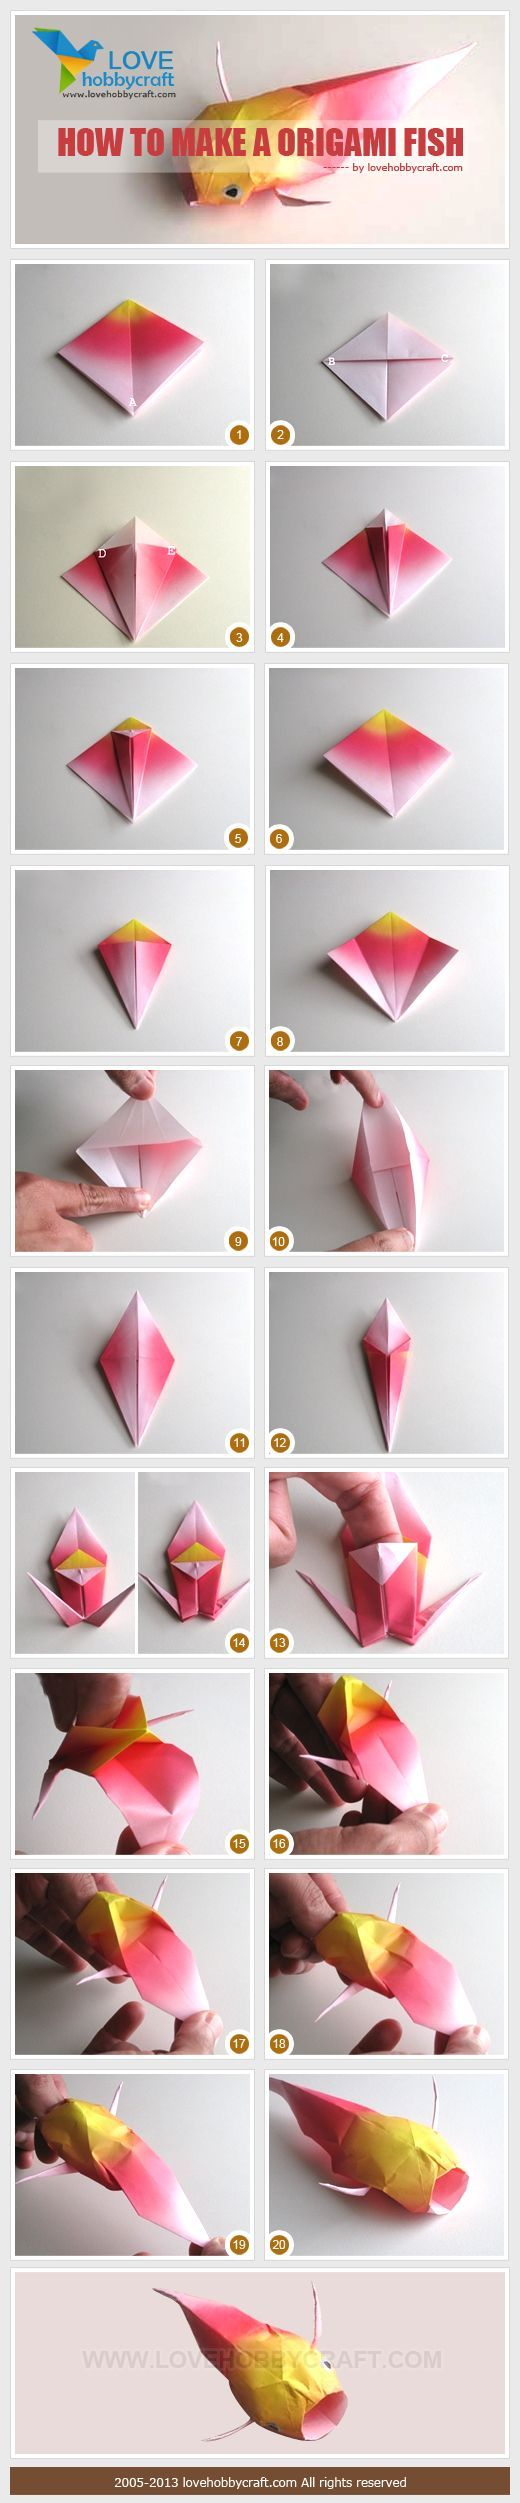 How to make origami fishbag-271                                                                                                                                                                                 More